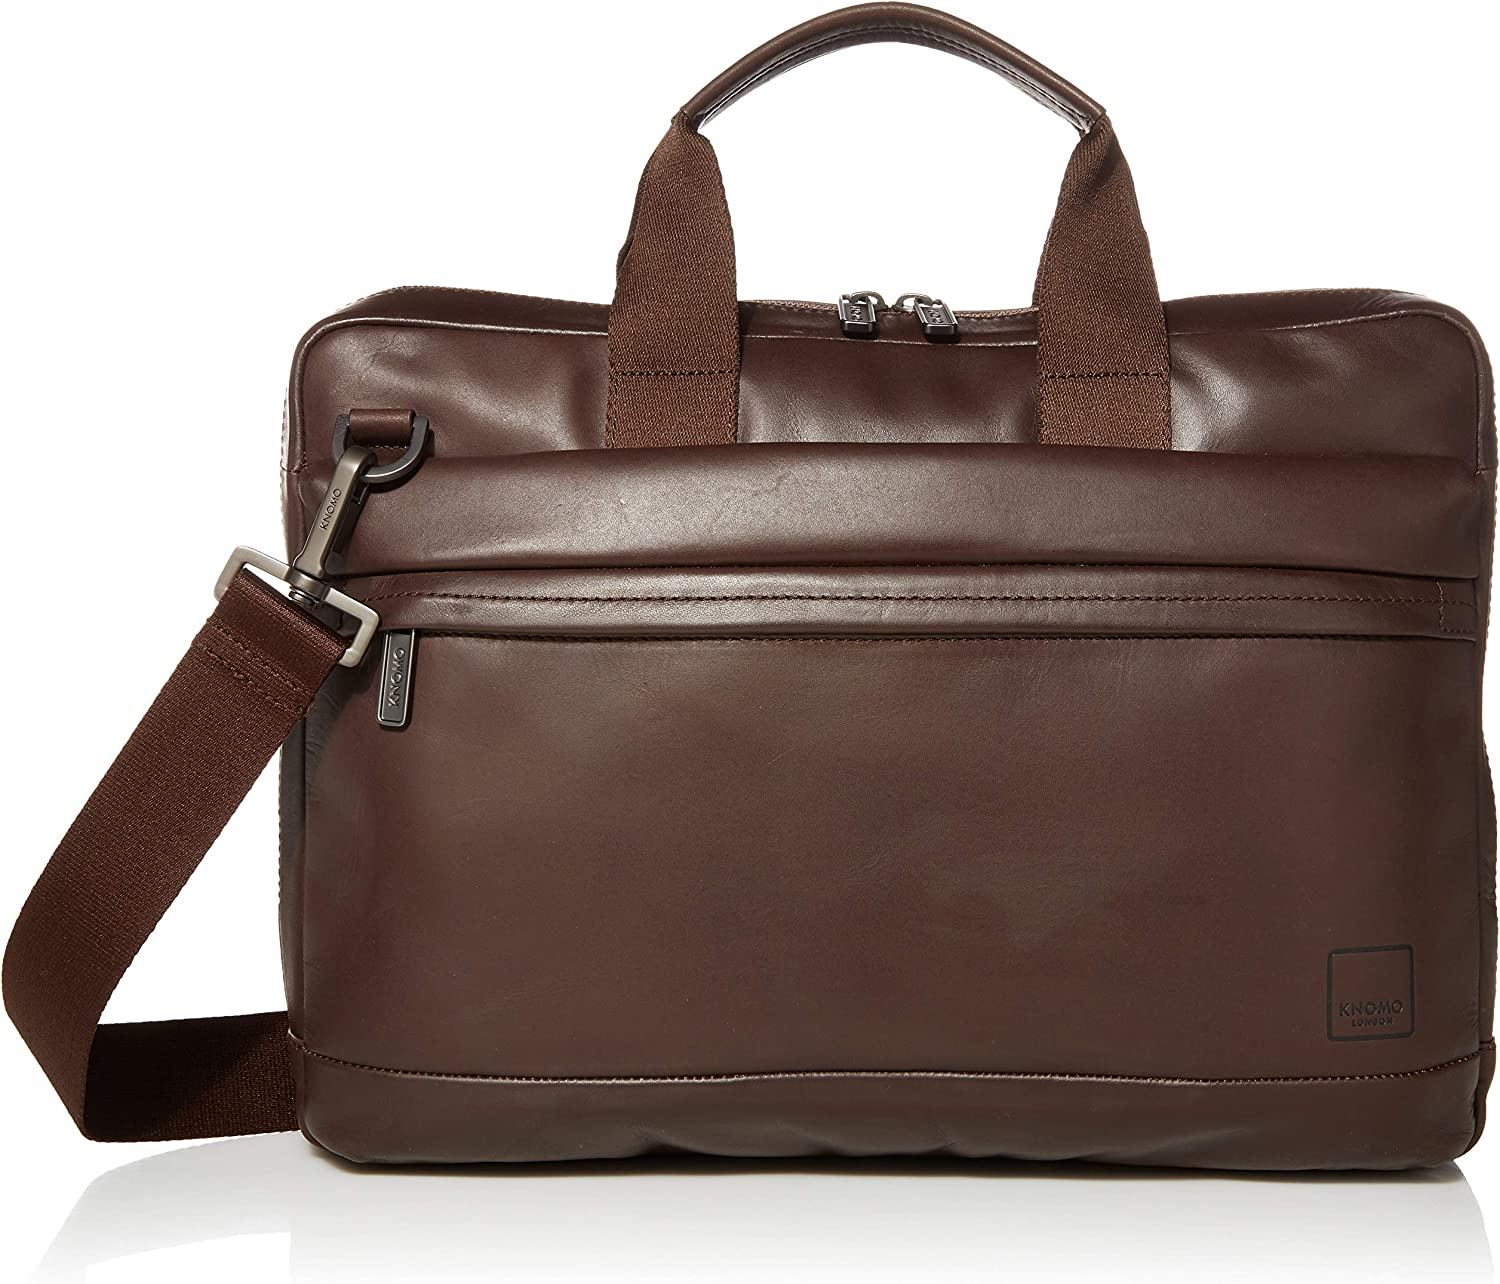 Knomo Luggage Men s Foster Briefcase, Brown, One Size